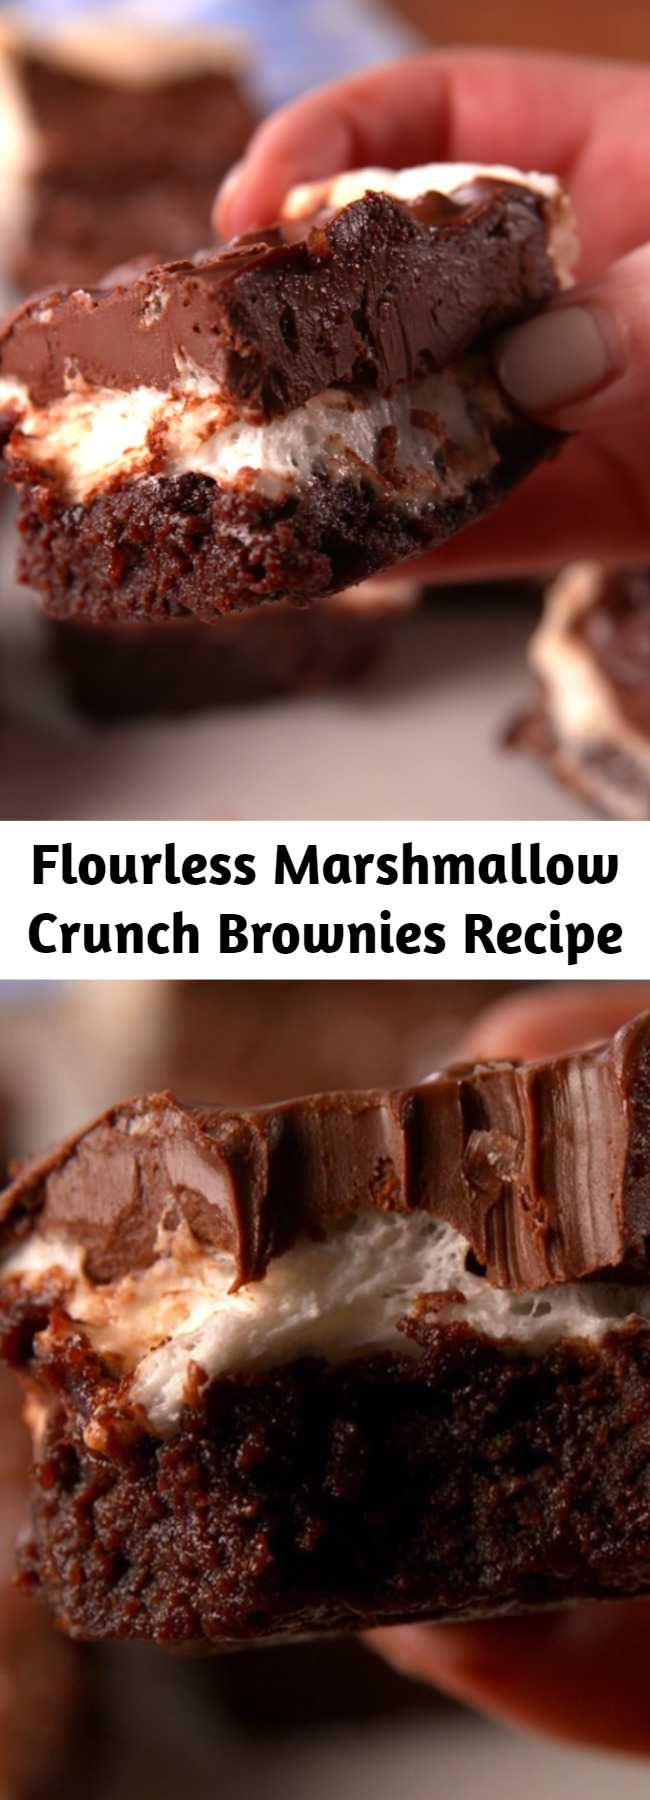 Flourless Marshmallow Crunch Brownies Recipe - Fudgy, chewy, and completely gluten-free. Super fudgy brownies topped with a layer of marshmallows and a chocolate, peanut butter and Rice Krispies mixture.